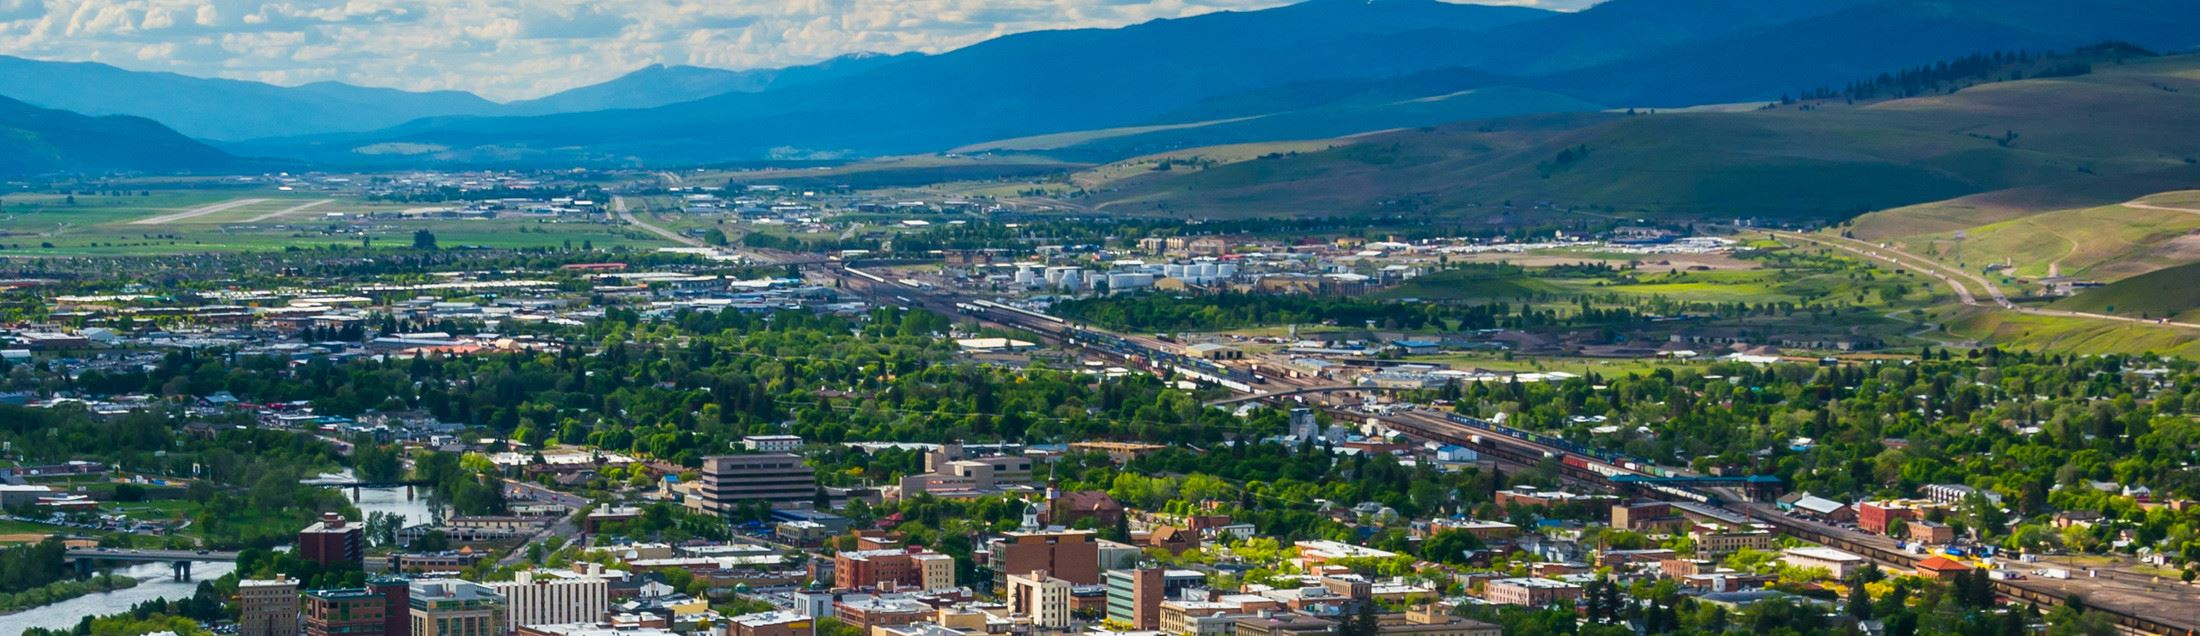 Montana Association of Planners 2021 Conference